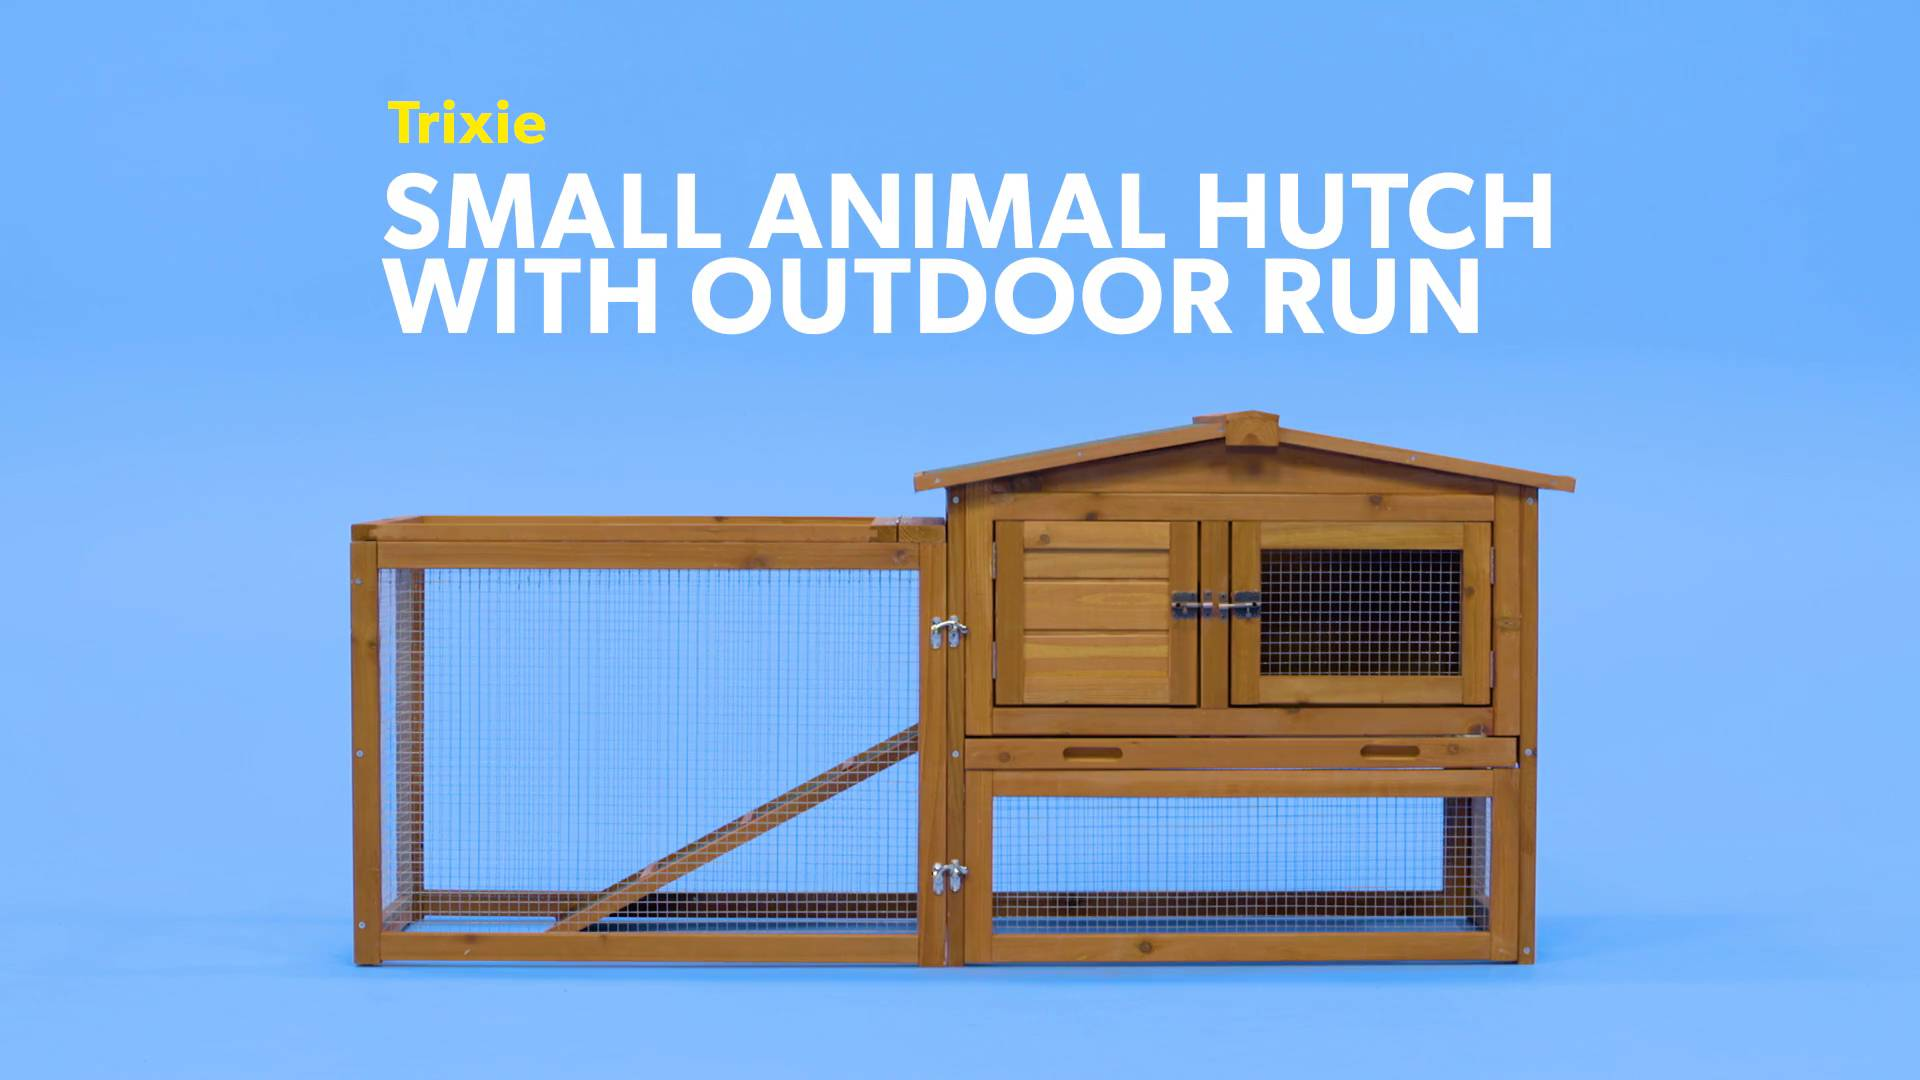 plans amp run of after cheap outdoor hutch best trixie with reviews house for two free story indoor natura rabbit xl cage